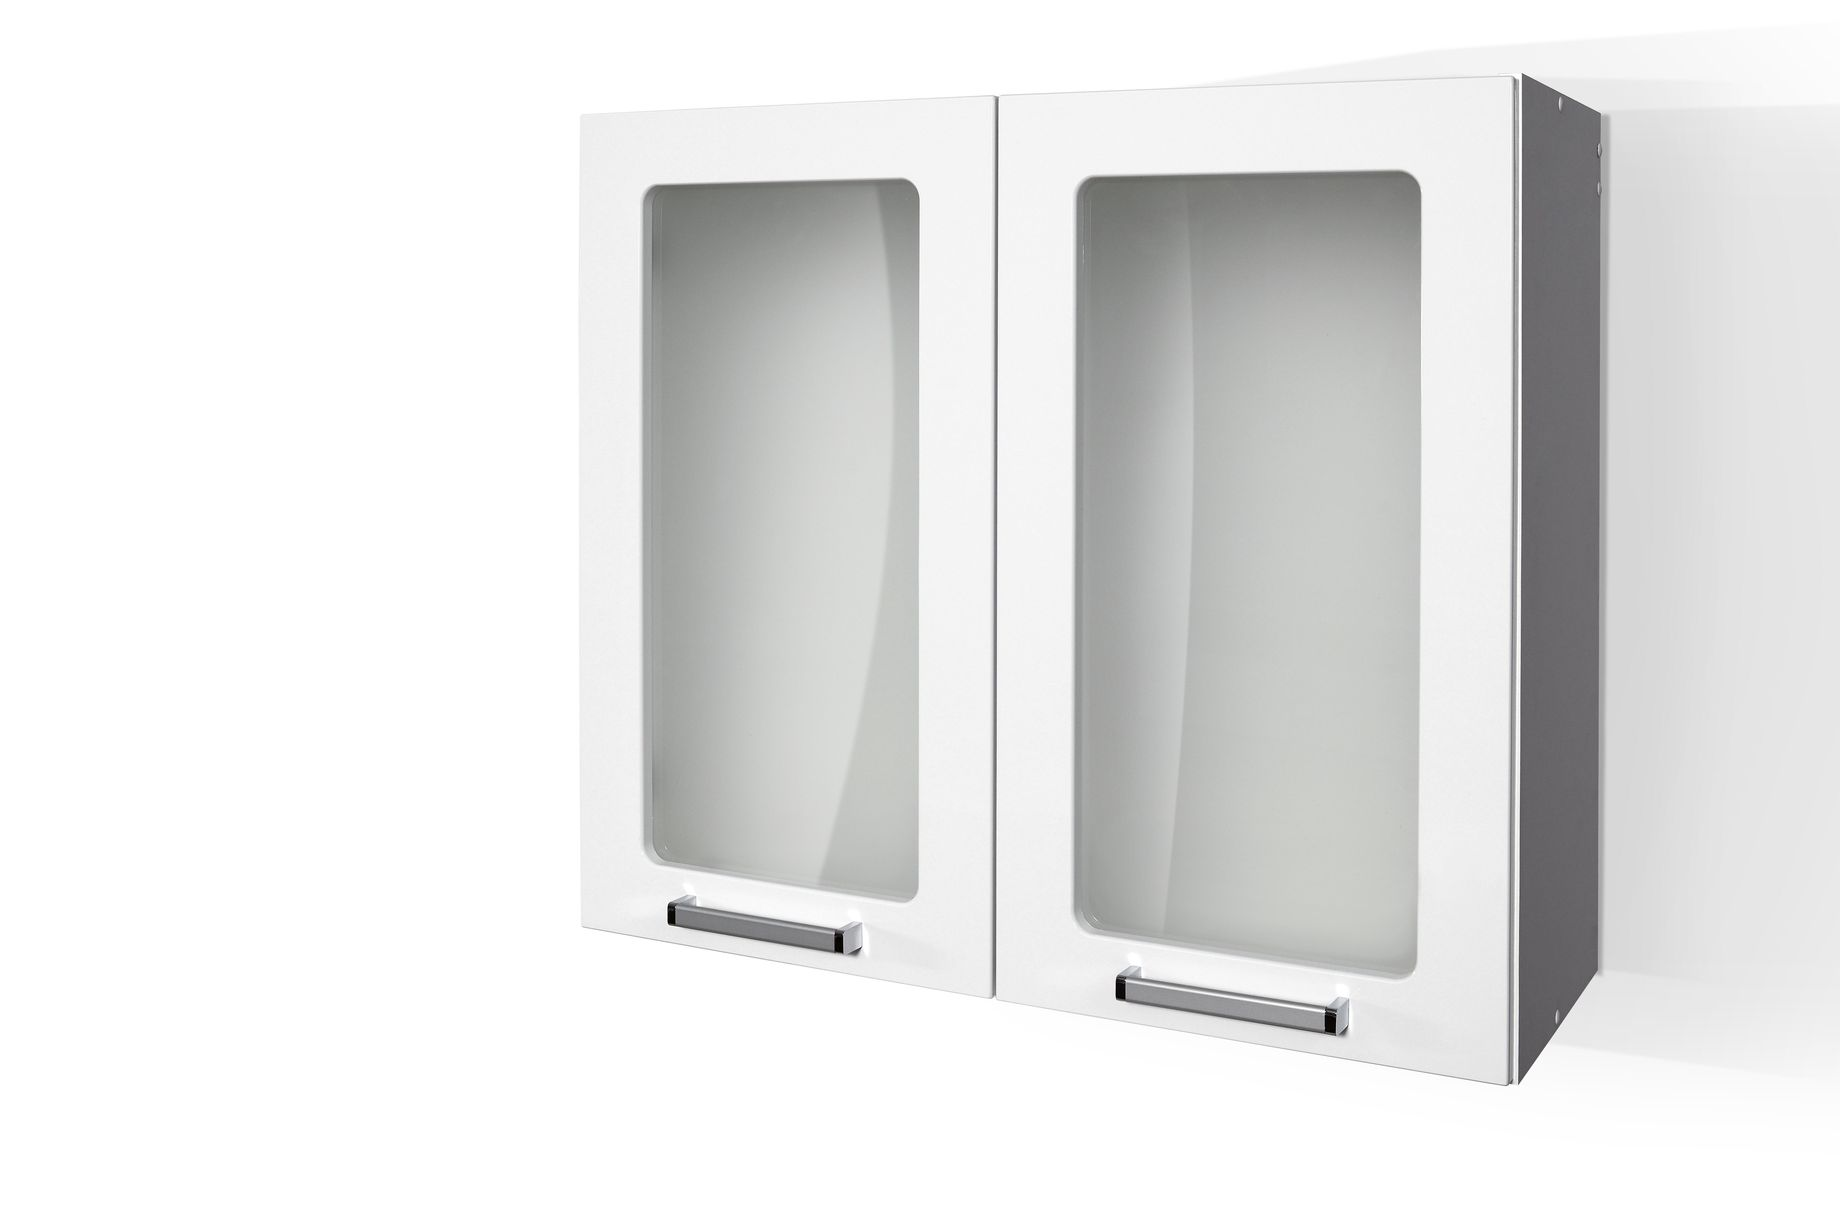 High Gloss White Wall Cabinet W60S for Kitchen